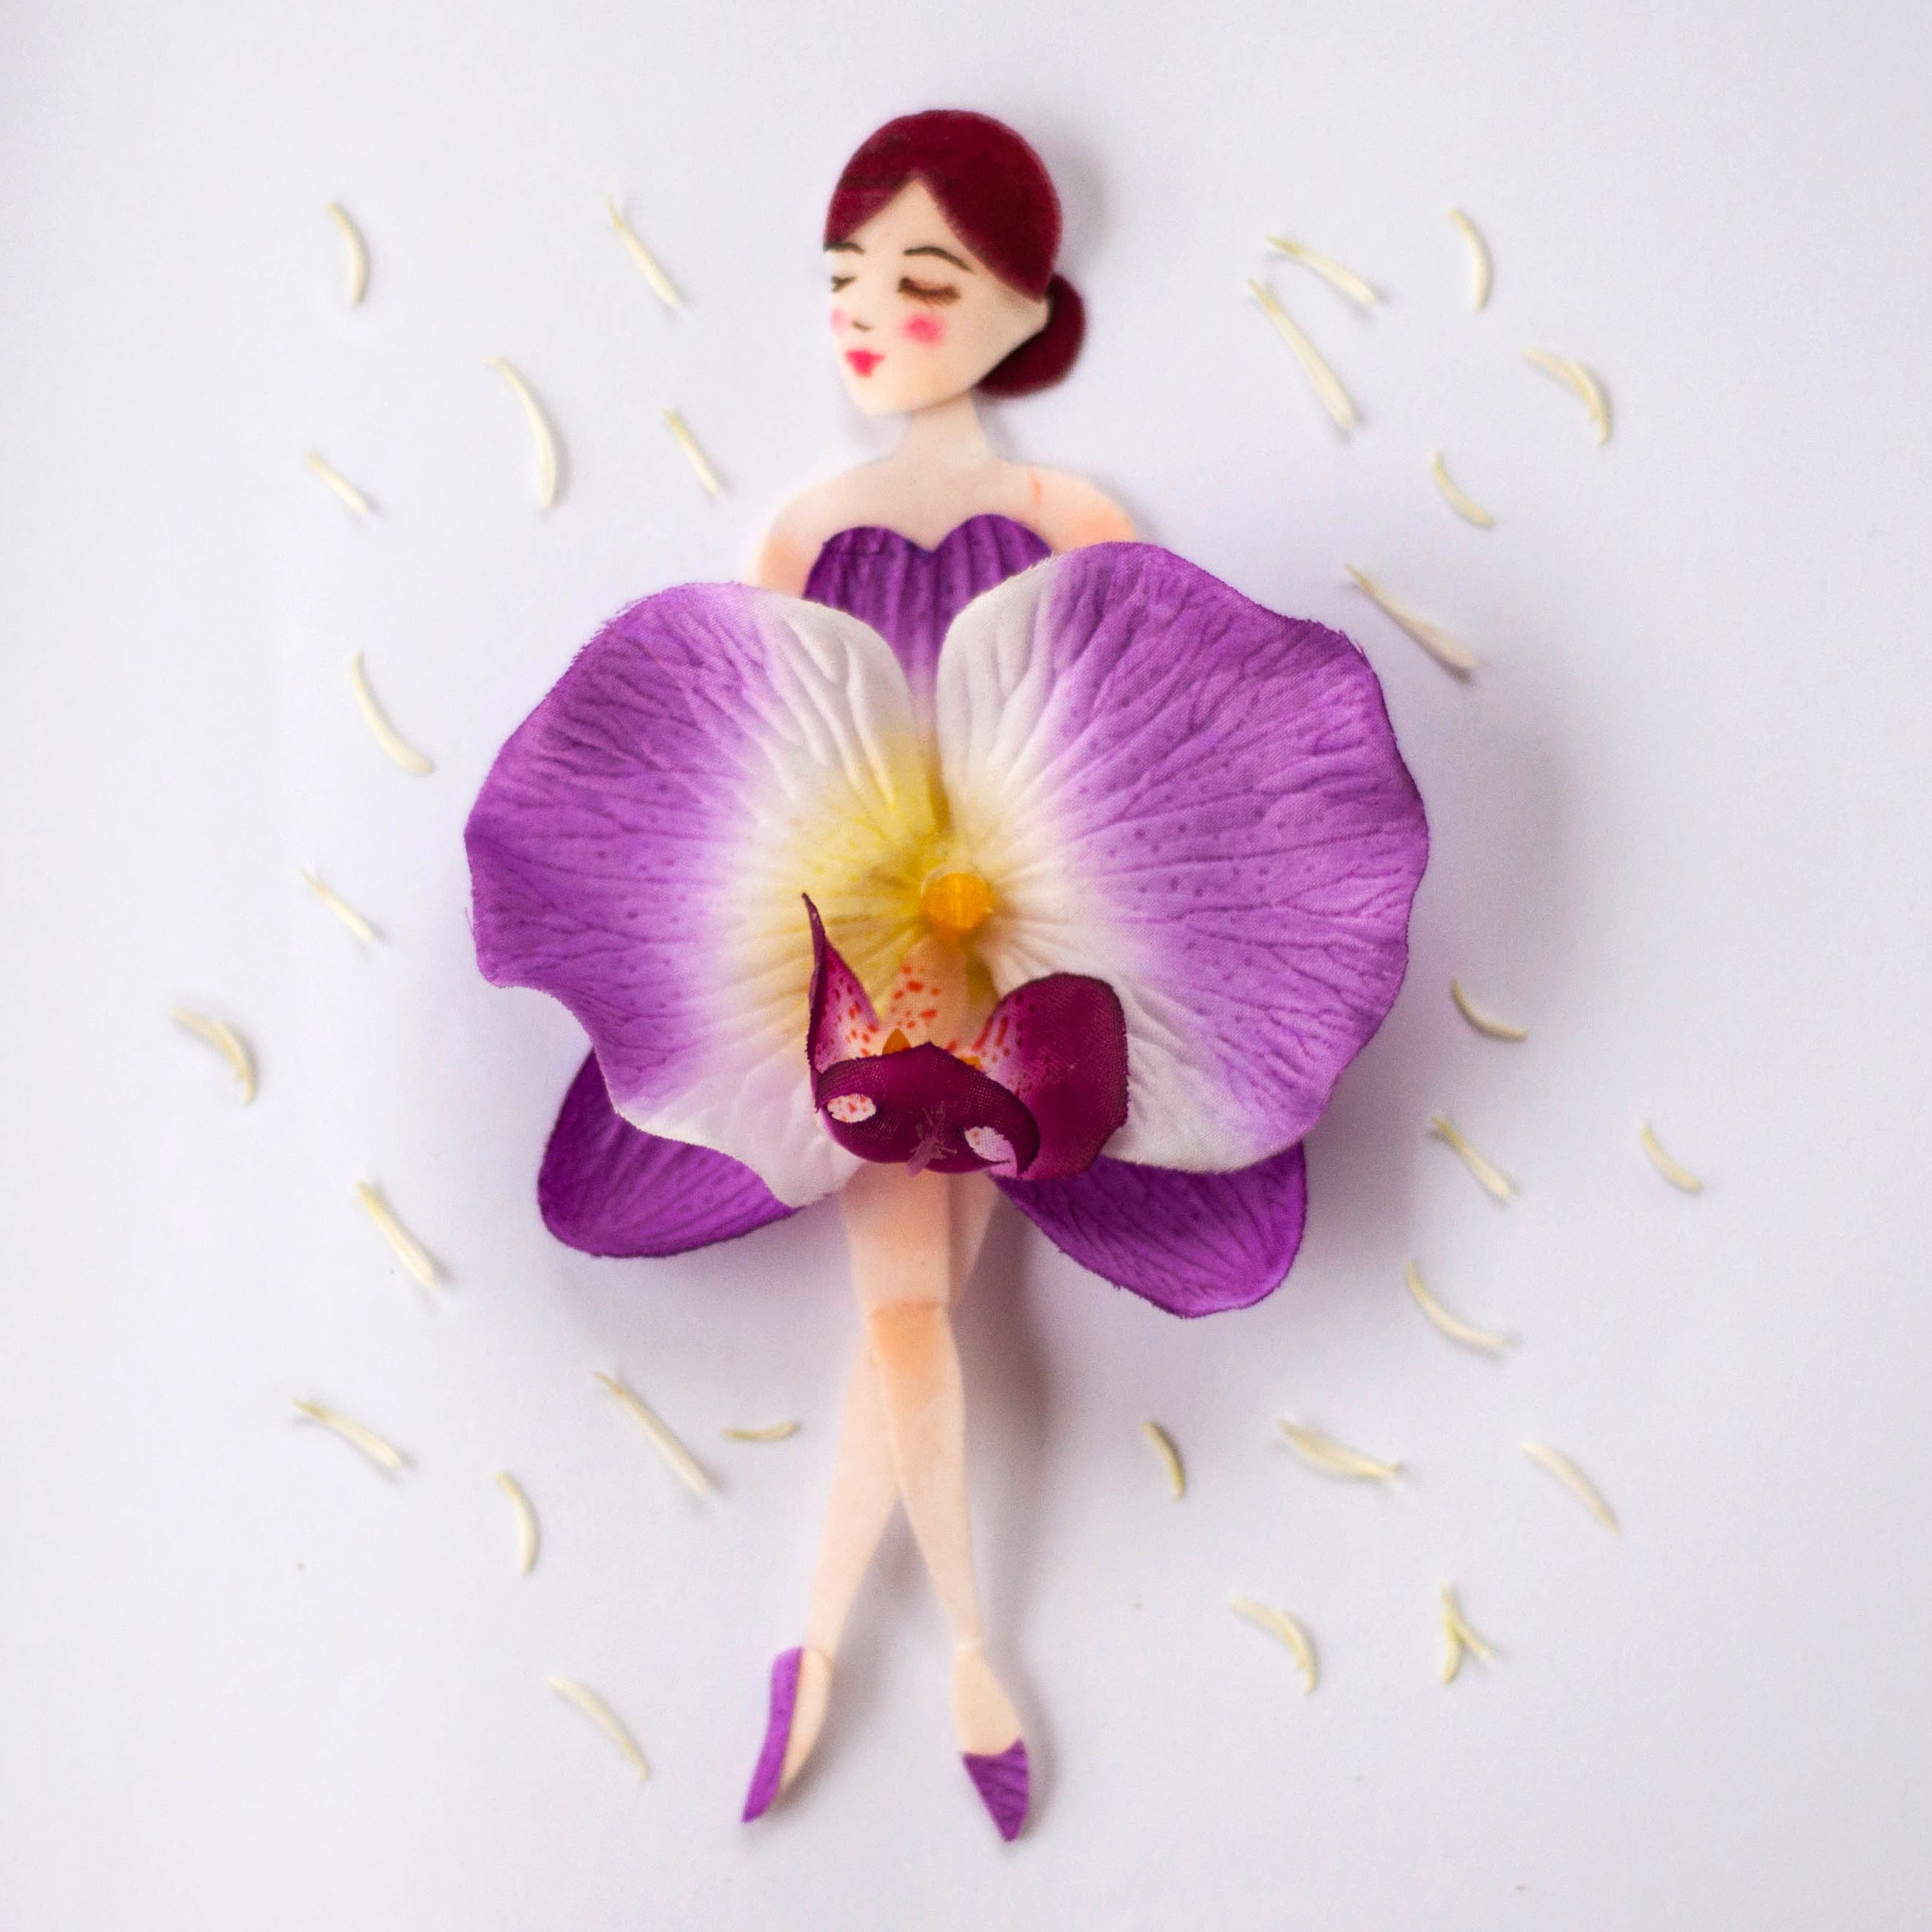 Miss Singapore Made Of Vanda Miss Joaquim Singapore S National Flower A Hybrid Orchid Flower Petal Art Floral Art Design Flower Dress Art